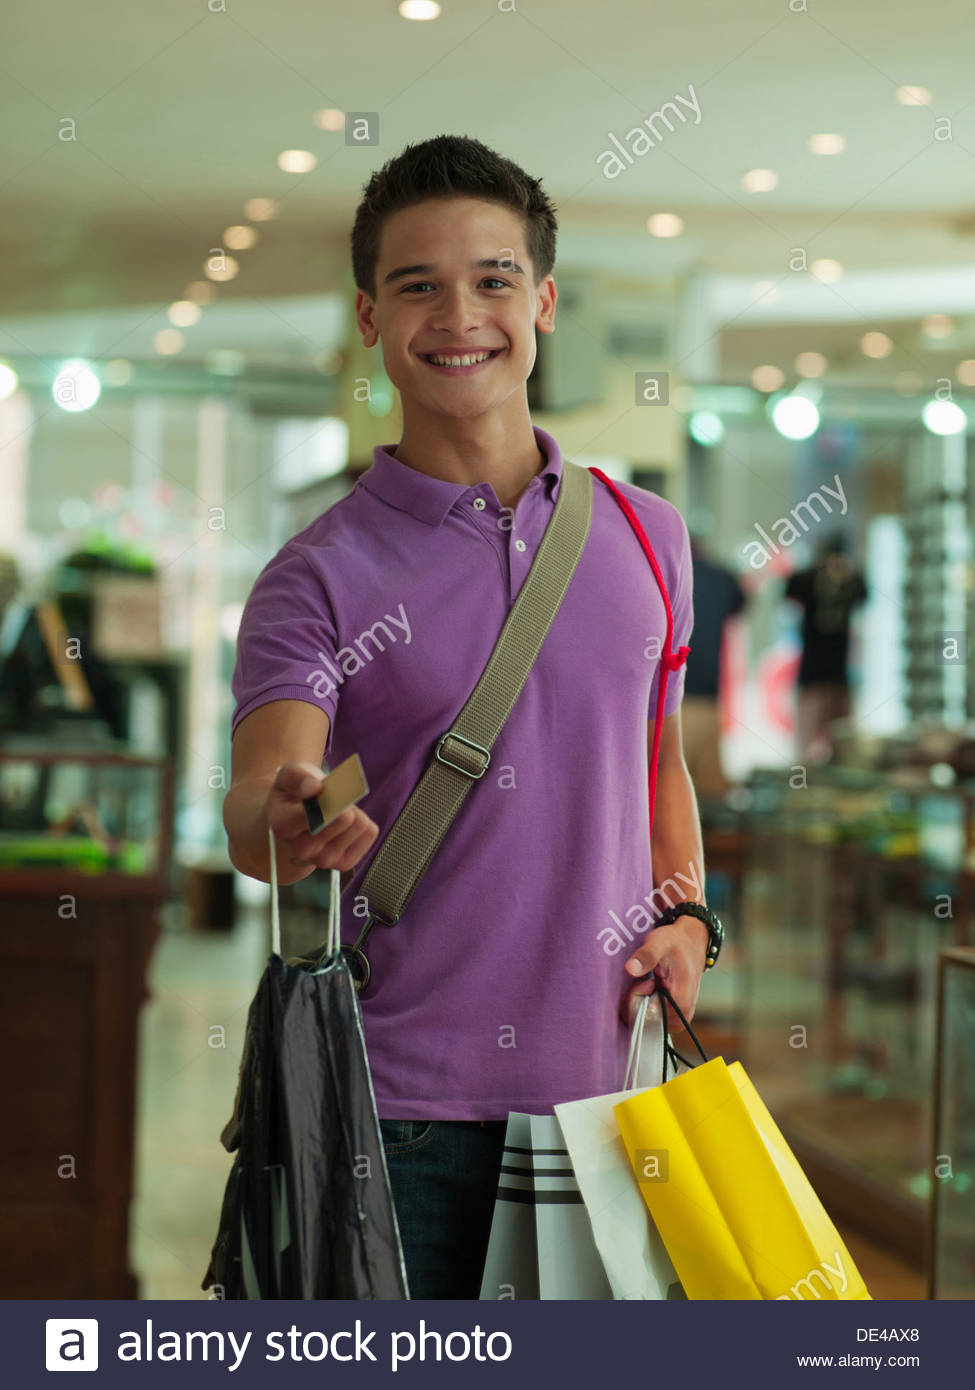 Smiling man Afficher carte de crédit avec carrying shopping bags in store Photo Stock